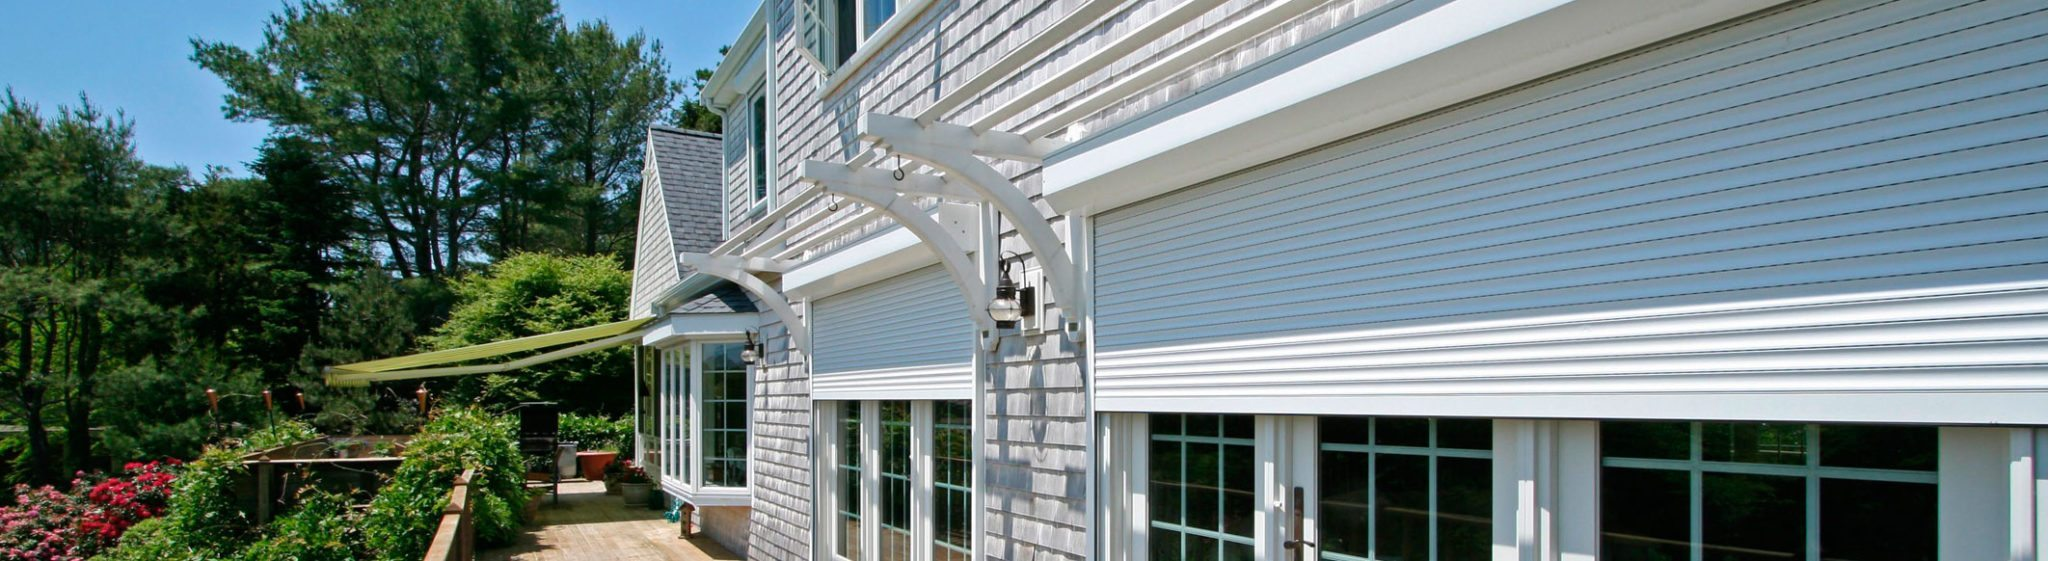 Shade and Shutter Systems,Rolling Shutters Puerto Rico,Rolling shutters San Juan,Rolling Shutters MA,Rolling Shutters Long Island,Rolling Shutters NY,Rolling Shutters CT,Rolling Shutters RI,Rolling Shutters Cape Cod,Long Island Weather Protection,Weather Protection,Storm Protection,Storm Shield,Noreaster,Hurricane Protection,Cape Cod Storm Protection,Storm Shutters,NY Storm Shutters,Long Island Shutters,hurricane shutters,security shutters,rolling shutter,rolling shutters,storm shutters,outdoor shutters,roller shutter,hurricane shutters,security shutters,rolling shutter,rolling shutters,storm shutters,outdoor shutters,roller shutter,wheat belt Rolling Shutters,rolling shutters chicago,roll up shutters,roll shutters,rolladen shutters,security roller shutters,roller shutters,security window shutters,tucson rolling shutters,window roller shutters,accordion shutters,metal shutters,wheatbelt,security blinds,shop shutters,what is rolling shutter,roller-shutters,electric shutters,european rolling shutters,rolling security shutters,exterior rolling shutters,roll-up shutters,rollac shutters,roll down security shutters,roll-up shutter,bahama hurricane shutters,shutters inc,home security shutters,wheatbelt inc,rollac,commercial shutters,rolling shutters cost,security rolling shutters,rolling hurricane shutters,roll up hurricane shutters,roll up storm shutters,european shutters,roll up security shutters,rolling storm shutters,security shutters residential,metal security shutters,security shutters for windows,hurricane blinds,rolling shutter correction,roll down hurricane shutters price,exterior roller shutters,interior security shutters,roller shutters for windows,roller security shutters,european blinds,patio shutters,shutter effect,rolling screen,global shutter vs rolling shutter,global shutters,metal roller shutters,rolling shutters for windows,rolling shutters prices,rolling shutters price,rolling metal shutters,rolling shutters las vegas,rolling shutters manufacturers,exterior roll up shutters,rolling security shutters cost,rolling shutters tucson,shutters rolling,roll up metal shutters,wooden rolling shutters,retractable shutters,electric rolling shutters,motorized rolling shutters,rolling window shutters,rolling shutters for patio doors,outdoor rolling shutters,steel rolling shutters,european shutters for windows,somfy shutters,retractable shutter,roll shutters for windows,outside window roller shutters,europe security rolling shutters,roll up window shutter,automatic storm shutters,european window shutters,interior rolling shutters,roll shutters prices,rolling shutter windows,rolladen shutters cost,retractable shutter systems,outdoor window roller shutters,window roller shutters exterior,metal rolling shutters,types of rolling shutters,rolling exterior shutters,window rolling shutters price,hurricane roll up shutters,tucson rolling shutters reviews,plastic rolling shutters,motors for rolling shutters,rolling shutters motors,security roller blinds,roller shutters window,retractable window shutters,roll up window security,storm shutters roll up,motorized hurricane shutters,rolling window shutter,aluminum rolling shutters,cost of rolling shutters,roller shutters security,outdoor roller shutters,european awning,roller shutter installers,door shutter manufacturers,rollac shutter of texas inc,rollac rolling shutters,storm shutters houston,exterior storm shutters,automatic hurricane shutters,roll up shutter doors,european roller shutters,aluminum roller shutter,roll up shutters for windows,rolling shutters for sliding glass doors,residential roller shutters,steel security shutters,shutters tucson,rolling shutter cost,security metal shutters,roll up security windows,roll up window protection,roll up security window,window security shutter,windows with roller shutters,shutters metal,metal storm shutters,metal window shutters security,roller shutter design,rollac shutter of texas,window roll down shutters,locking shutters,roller shutter company,roller star shutters,electronic rolling shutter,rolling shutter detail,interior roller shutter,Somfy Motors,rolling shutter wikipedia,indoor roller shutter,indoor roller shutters,rolling shutter wiki,rolladen rolling shutters,hurricane roll down shutters,roll down shutter,hurricane shutters roll down,hurricane shutters texas,storm blinds,roll down security window covers,protective window shutters,exterior roll shutters,exterior roller shutter,window roll shutters,shutters roll up,roll shutter,shutters roll-up,roll up window shutters,rolling window shutters exterior,roll up shutter window,exterior roller shutters for windows,exterior motorized shutters,rollup shutters,exterior rolling shutters for windows,window rolling shutters,outdoor security shutters,automatic window security shutters,security rolling shutter,outdoor electric shutters,exterior roll down shutters,roller window shutters,automatic window shutter,rolling shutter window,roll-up window security shutters,security roller shades,metal roll up shutters,roller security blinds,roller shutter window,roll up shutter,security roller doors,automatic metal shutters,home security roller shutters,security roller shutter doors,rolling security shutter,metal roll up window,automatic roll down shutters,metal roll shutters,window shutters roller,window security roller shutters,security roll up shutters,rollup shutter,aluminum roller shutters,roller security shutter,roll up security blinds,external roller shutter,exterior electric shutters,automatic window shutters,automatic window shutter system,european style window shutters,roller shutter for home,windows roller shutters,roller shutter for windows,security roll shutters,buy roller shutters,european aluminum shutter,roll-up window shutters,electric shutters for windows,roller security screen,europe shutters,roller shutter windows,european shades,rolling shutter fix,roll down hurricane shutters repair,security roller shutters uk,rolling shutters parts,rolling shutters in chicago,hurricane shutters vero beach,rolling shield awnings prices,roller shutter pulley,fireproof roller shutters,roller shutter installation guide,shade & shutter systems inc,shutter man,sliding timber shutters,electronic shutters,roller shutter installation manual,rolling grilles,shutters electric,shutters houston tx,window and door security shutters,automated roller shutters,exterior retractable blinds,metal rolling shutter,roller shutter security,stainless steel roller shutters,global shutter rolling shutter,security roller grilles,security roller,windows with built in security shutters,security window shutter,secure window roller shutters,aluminum roll-up shutters,rolling shutter propeller,electric storm shutters,rolling shutter video,rolling shutter global shutter,commercial window shutters,metal security shutters for windows,rolling shutter youtube,rolling shutter example,security blinds home,somfy key switch,shutters america,storm shutters roll down,roll down security window shutters,security awnings,motor shutter,roller shutter section,shutter control system,security shutters and doors,retail shutters,rollac shutter cost,electric window roller shutters,shutters american,electric security blinds,safety shutters windows,protection security shutters,tambour shutters,window security shutters exterior,storm awnings,shutter protection,auto window shutters,roll shutter prices,roll up shutters price,external window roller shutters,american rolling,security shutters for doors,power window shutters,hurricane rolling shutters,motorized security shutters,window shutter security,residential security shutters,roll down window shutters,secure roller shutters,interior roller shutters,roller shutter products,security window shutters exterior,bay area shutters,european window shades,door and window shutters,roller shutter material,protection shutters,security shutters for house windows,roll-shutter,roller shutter controller,roller style shutters,security roll down shutters,tucson shutters,modern security shutters,home window security shutters,shutter american,security shutter systems,rolling shutter security doors,stainless steel roller shutter,glass roller shutters,instant shutter,texas shutters,rotating shutter,motorised shutter,window protection shutters,roller shutter controls,security blinds for the home,remote control for roller shutters,video rolling shutter,shutters residential,roll down security window,rolling shutter automation system,cheap security shutters,automatic door shutters,window security blinds,rolling shutter problem,rollers shutters,roller security,external roller shutters for windows,shutter roll,external roller window shutters,residential security blinds,rolling window screens,american shutters security,shutter automation,security roller shutters price,commercial roller shutter,residential window security shutters,hurricane security,commercial security shutters,shutters motor,metal shutters for security,motorized window shutter,storm shades,security roll,security shutters for home windows,rolladen security shutters,window rolladen,rolling shutter wobble,define rolling shutter,rolling shutter price,built in security shutters,shutter rollers,shutter electric,buy roller shutter,motor for shutters,tucson blinds and shutters,hurricane shades for windows,global electronic shutter,rolling shutters security,rolling shutters phoenix,security rolling shutters cost,rolling shutters denver,rolling security shutters for windows,rolling shutters arizona,rolling shutters windows,all american rolling shutters,does rolling shutters cost,european rolling window shutters,tucson rolling shutters cost,motorized rolling shutter,european shutter,rolling steel window shutters,rolladen shutters reviews,rolling shutters kansas,rolling shutters miami,european shutters inc,exterior european rolling shutters,roller shutters manufacturer,european rolling shutters cost,exterior rolling shutter,rolling shutters design,roll shutters cost,electronic rolling shutters,rolling shutters manufacturer,define rolling shutters,american rolling shutters,european style rolling shutters,european window shutters exterior,rolling steel security shutters,rolling window shutters manufacturers,steel roll shutters,tucson rolling shutters jobs,european rolling shutters san jose,window roller shutter,roll up exterior shutters,skylight roller shutters,security rolling shutters california,european shutter systems,rolling hurricane shutters florida,metal rolling window shutters,european rolling shutters reviews,rolling hurricane storm shutters,arizona shutters tucson,rolling metal storm shutters,tucson rolling shutters inc,shutters roller,security rolling shutters michigan,european rolling shutters website,steel security window shutters,rolling storm shutters houston,hurricane rolling shutter manufacturers,hurricane security shutters,cheap roller shutters,outdoor window security shutters,rolling shutters los angeles,motorized storm shutters,rolling window shutters price,rollac shutters of texas,automatic hurricane shutters cost,automatic storm shutters for windows,shutter roller,roll down security shutters cost,rolling security shutters manufacturer,roller shutter panels,rolling shades and shutters,hurricane shutters roll,roll up hurricane shutters florida,rolling shutters egypt,rolling shutters greece,shutters roll,houston hurricane shutters,hurricane roller shutters,hurricane roll shutters,residential storm shutters,hurricane shutters houston texas,phoenix rolling shutters,much do rolling shutters cost,roller window shutters exterior,exterior retractable shutters,window rolling shutters exterior,cheap roller shutter,exterior roll up window shutters,motorized roller shutters,exterior metal roll up shutters,metal roll up storm shutters,european storm shutters,roll up window shutters exterior,european shutters exterior,aluminum roll up window shutters,rolling shutters michigan,metal roll up window shutters,roll a shutter,european exterior shutters,exterior roller shutters for windows prices,outdoor retractable shutters,external window security shutters,roller hurricane shutters,rolling security window blinds,motorized exterior rolling shutters,outside storm window shutters,solar roller shutters,roll up window shutters manufacturers,retractable security shutters,roll up shutters and awnings,exterior rolling shutters prices,shutter rolling,roll up hurricane window shutters,european blinds san jose,roll up hurricane storm shutters,aluminum roll-up window shutters,exterior shutters san jose ca,steel window roller shutters,home roller shutters,electric shutters for homes,roll up security window shades,european roll shutters,exterior roll up storm shutters,hurricane shutters roll up,retractable patio shutters,exterior roller shutters canada,rolling shutters las vegas nv,security rolling shutters los angeles,rolling window shutters chicago,roll shutters northwest,rolling shutters nyc,solar shutter systems,plastic roller shutters,european roll shutters colorado springs,bahama shutters florida,shutter services chennai,steel shuttering,shutter manufacturers in mumbai,storm shutters galveston,steel roller shutters,rolling window shutters for sale,rolling shutter automation,internal window security roller shutters,security shutter doors,rolling shutter distortion,roll up security shutters cost,progressive shutter mode,home window shutters security,storm shutters for doors,tucson shutters and blinds,electronic global shutter,security awning,roll down shutters security,rolling shutters tucson az,roll-up window shutters canada,fabric roller shutters,hurricane roller shades,roller shutters for homes,smear effect,roll down hurricane shutters texas,house window security shutters,residential hurricane shutters,rollupshutter.com,star rolling shutter,shutter door security,metal security blinds for windows,electric security roller shutters,automatic steel window shutters,tucson shade,residential security roller shutters,rolling camera shutter,automatic security shutters,roller shutters for sliding doors,cmos rolling shutter effect,residential shutters security,steel roller shutter,solar shades tucson,interior rolling window shutters,rolling security shutters residential,roller shutters for houses,hurricane shutters galveston tx,roller shutter for house,kiosk rolling shutters,security shutters doors,rolling shutter video distortion,security shutters for sliding glass doors,alutech storm,remote control roller shutter,security blinds for patio doors,security window screens houston,roll hurricane shutters,rolling shutter example video,steel roller shutters security,rollac shutters of texas inc,roll down exterior blinds,rolling security shutters-tucson,european shutters colorado springs,residential rolling shutters,security shutters residential cost,security shutters florida,power hurricane shutters,steel security shutters residential,material roller shutter,indoor residential security shutters,roller shutters motor,electric security window blinds,roll up storm doors,weather shutters,home secure hurricane shutters,roll down storm shutters texas,wheat belt inc,european roller blinds,shutters for home security,sliding glass door security shutters,residential security shutters price,stainless steel security shutters,euro shutter awnings,shutters security,roll skewing,shutter speed artifacts,external window security blinds,remote control hurricane shutters,retractable awnings bay area,metal window roller shutters,display roller shutters,shutter artifacts,rolling shutter artifacts video,roller shutters home,inside rolling doors,rollac shutters price,roller shades san jose,security shutters commercial,solar shades tucson az,roll down metal security shutters,alutech rolling shutters,security shutters atlanta,residential security shutters india,motorized shutters exterior,security hurricane,patio door security shutters,power shutters window,exterior window shutters pictures,electric window storm shutters,roll up storm shutters florida,european awnings,how much are roller shutters,roller shutters for windows prices,parts of a rolling shutter,shutter security doors,electronic rolling shutter speed,patio sun screens tucson,rolling shutter imovie 11,shutter security,security blinds shutters,www alutech com,star roller shutter,all american hurricane shutters,all american skylights,electric security shutters homes,hurricane roller shutter door,external roller shutters,exterior home security shutters,retractable awnings san jose ca,residential interior security shutters,roll up window shutters price,exterior window shutters motorized,security roller shutters for windows,european shutters san jose,rolling shutters home depot,rolling shutters florida,european rolling shutters ,rolling shutters houston,patio rolling shutters,rolling shutters for security,rolling shutter european window,rolling shutters residential,indoor rolling shutters,rolling shutters order online,american shutters roller shutter,european window rolling shutters,rolling security window shutters,rolling shutters california,rolling shutters hurricane,exterior roller shutter blinds,exterior rolling shutters automatic,european rolling shades,exterior rolling shutters by european rolling shutters,your roller shutters,home rolling shutters,rolling shutters colorado,inside rolling shutters,rolling shutters camera,high security rolling shutters,security window roller shutters,steel roller shutters for windows,pease company rolling shutters,tucson rolling shades,exterior rolling shutters colorado,security windows roller shutters,interior roll up shutters,window roll shutters exterior,buy window roller shutters,rolladen shutters colorado springs,rolling shutters colorado springs,rolling outside metal window shutters,rolling shutters for sliding doors,european exterior rolling shutters,tucson rolling shutters inc tucson az,steel roller shutters windows,outside window protection roll ups,cheap rolling shutters,shutters tucson arizona,metal rolling security shutters,electric rolling hurricane shutters,roll up security window covers,exterior window roller shutters,interior window roller shutters,building rolling window shutters,how much roller shutters,american rolling shutters colorado,retractable hurricane panels,house window roller shutters,hurricane screens security,rolling shutters austin texas,safety shutters your home,rolling shutters sliding glass door,metal security roller shutters,rolling vs global shutter,example of rolling shutter,extreme rolling shutter,home roller shutter doors,interior roller security shutters,what causes rolling shutter,vertical rolling shutter,fix rolling shutter meaning,roller star hurricane shutters,dslr no rolling shutter,cmos rolling shutter global shutter,rolling shutter effect explained,commercial hurricane shutters,hurricane shutters south texas,rolling shutters accessories,shading rolling shutters,rolling shutter price in bangalore,window roll up shutters,retractable rolling shutters,type of roller shutter,exterior european shutters,exterior rolling window shutters,european window roller shutters,european exterior window shutters,storm roll up shutters,european style exterior shutters,roller shutters automatic,residential window roller shutters,automated exterior window shutters,exterior window roll up shutters,roll down shutters for windows,exterior safety shutters,rollup window shutters,exterior security roller blinds,rolling shutters northwest indiana,roller shutters for home,window security roll shutters,european exterior blinds,external electric shutters windows,rolling door shutters home,home security window shades,european rolling shutters ers,exterior aluminum roller shutters,power security shutters,outdoor roller shutter blinds,metal roll up security shutters,european style exterior window shades,storm roller shutters,exterior metal security blinds,cost of exterior rolling shutters,security roller door shutters,outdoor security blinds,exterior shutters san jose,security roll up shutter,rolling window security shutters,security retail shutters,home security shutter,european windows shutters,roller storm shutters,security roller screens,electric security window shutters,power storm shutters,remote control exterior shutters,security exterior shutters,roll up storm windows,european exterior window shades,european outside blinds,european-style security/storm shutters,curved roller shutter,rolling shutter parts india,cost of rolling counter shutters,recessed metal rolling shutters,roller window shutters sydney,rolling shutters lowes,solar screens colorado springs,cost of rolladen shutters,perforated lath roller shutters,solar screens denver co,retractable exterior blinds,remote control storm shutters,automatic exterior shutters,storm and security shutter manufacturer,rolling shutter readout,video global shutter,lightning shutter effect,hurricane roll up doors,storm security shutters,power window shutter,rolling shutter video correction,a rolling shutter effect,what does rolling shutter mean,security shutters manufacturers,indoor storm shutters,exterior storm blinds,iphone shutter propeller,roll down window covers,rolling storm windows,metal security roller blinds,shutter video effect,security roll up window,usa shutters katy tx,exterior rolling security shutters,residential roll down security shutters,shutter effect imovie,windows with security shutters,smear digital camera,tucson shade screens,retractable storm shades,roller shutter warranty,european exteriors,remote controlled roller shutters,united roller doors,commercial security roller doors,national roller shutters,steel security roller shutters,prevent rolling shutter,roller metal shutters,roller security shutters ltd,remote controlled hurricane shutters,tucson sun screens,remote roller shutter switch,roller shades security,retractable metal window shutters,exterior storm shades,shutter cell phone,rolling hurricane shutter,shutter speed rolling,rolling-shutter effect,rotary shutter device,what does rolling shutter do,roller shutters for bars,rolling shutter lightning,coded rolling shutter,interior roll up security shutters,security shutter blinds,rolling shutter effect explanation,security shutters for your home,metal security window shutters,hurricane shutters rolling,home window roller shutters,rolling shutter prop,metal security door shutters,brown roller shutters,exterior security window shutters,screen patios tucson,interior security roller shutters,tucson screens,southern arizona sunscreens,roll down window protection,roll shutter systems inc,shutter rolling global,rolling shutter timing,aluminum roll-up shutter doors,powered exterior window shutters,electric security shutters windows,steel security shutters windows,new style roller shutters,rolling shutter explained,roll storm shutters,european window awnings,indoor safety shutters,residential roller shutter,roll down security shutters home,commercial window security shutters,security roller shutters commercial,patio door exterior shutters,solar powered roller shutters,rolling storm doors,rolling shutters houston tx,security house shutters,metal shutters security,roller shutters and awnings,roller-shutter,wheat belt doors,what is a roller shutter,patio storm shutters,security screens shutters